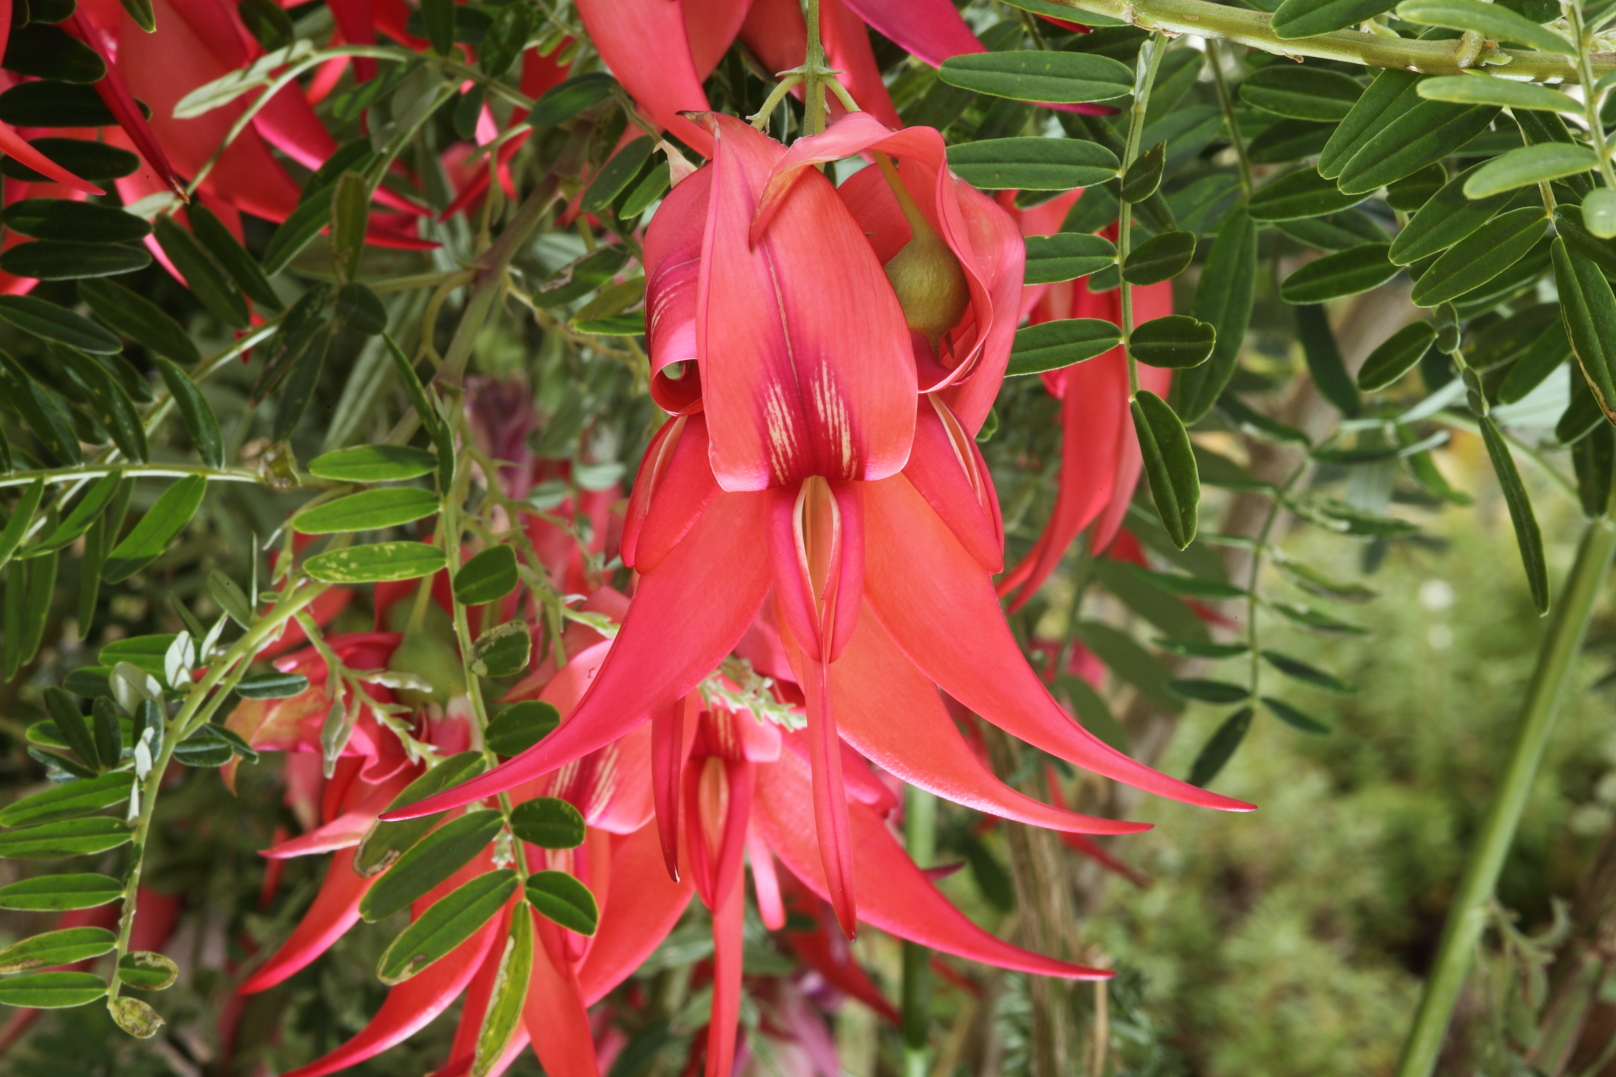 Kaka beak ( Clianthus puniceus ) has numerous threats but competition from exotic plant species is one of its greatest challenges.